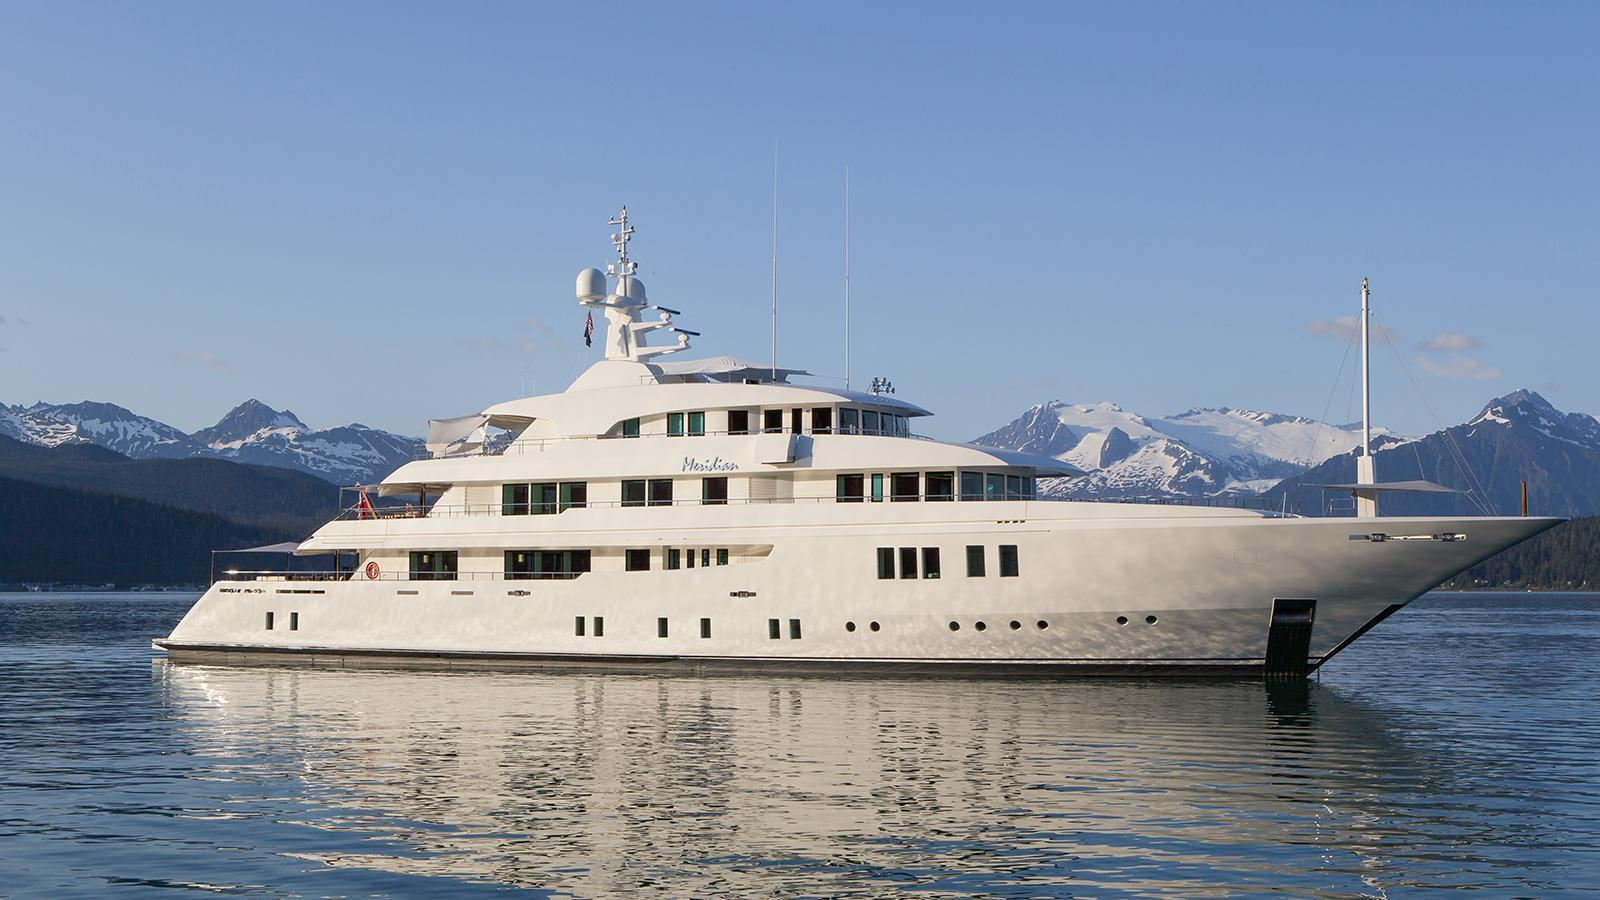 meridian-motor-yacht-icon-2012-62m-profile